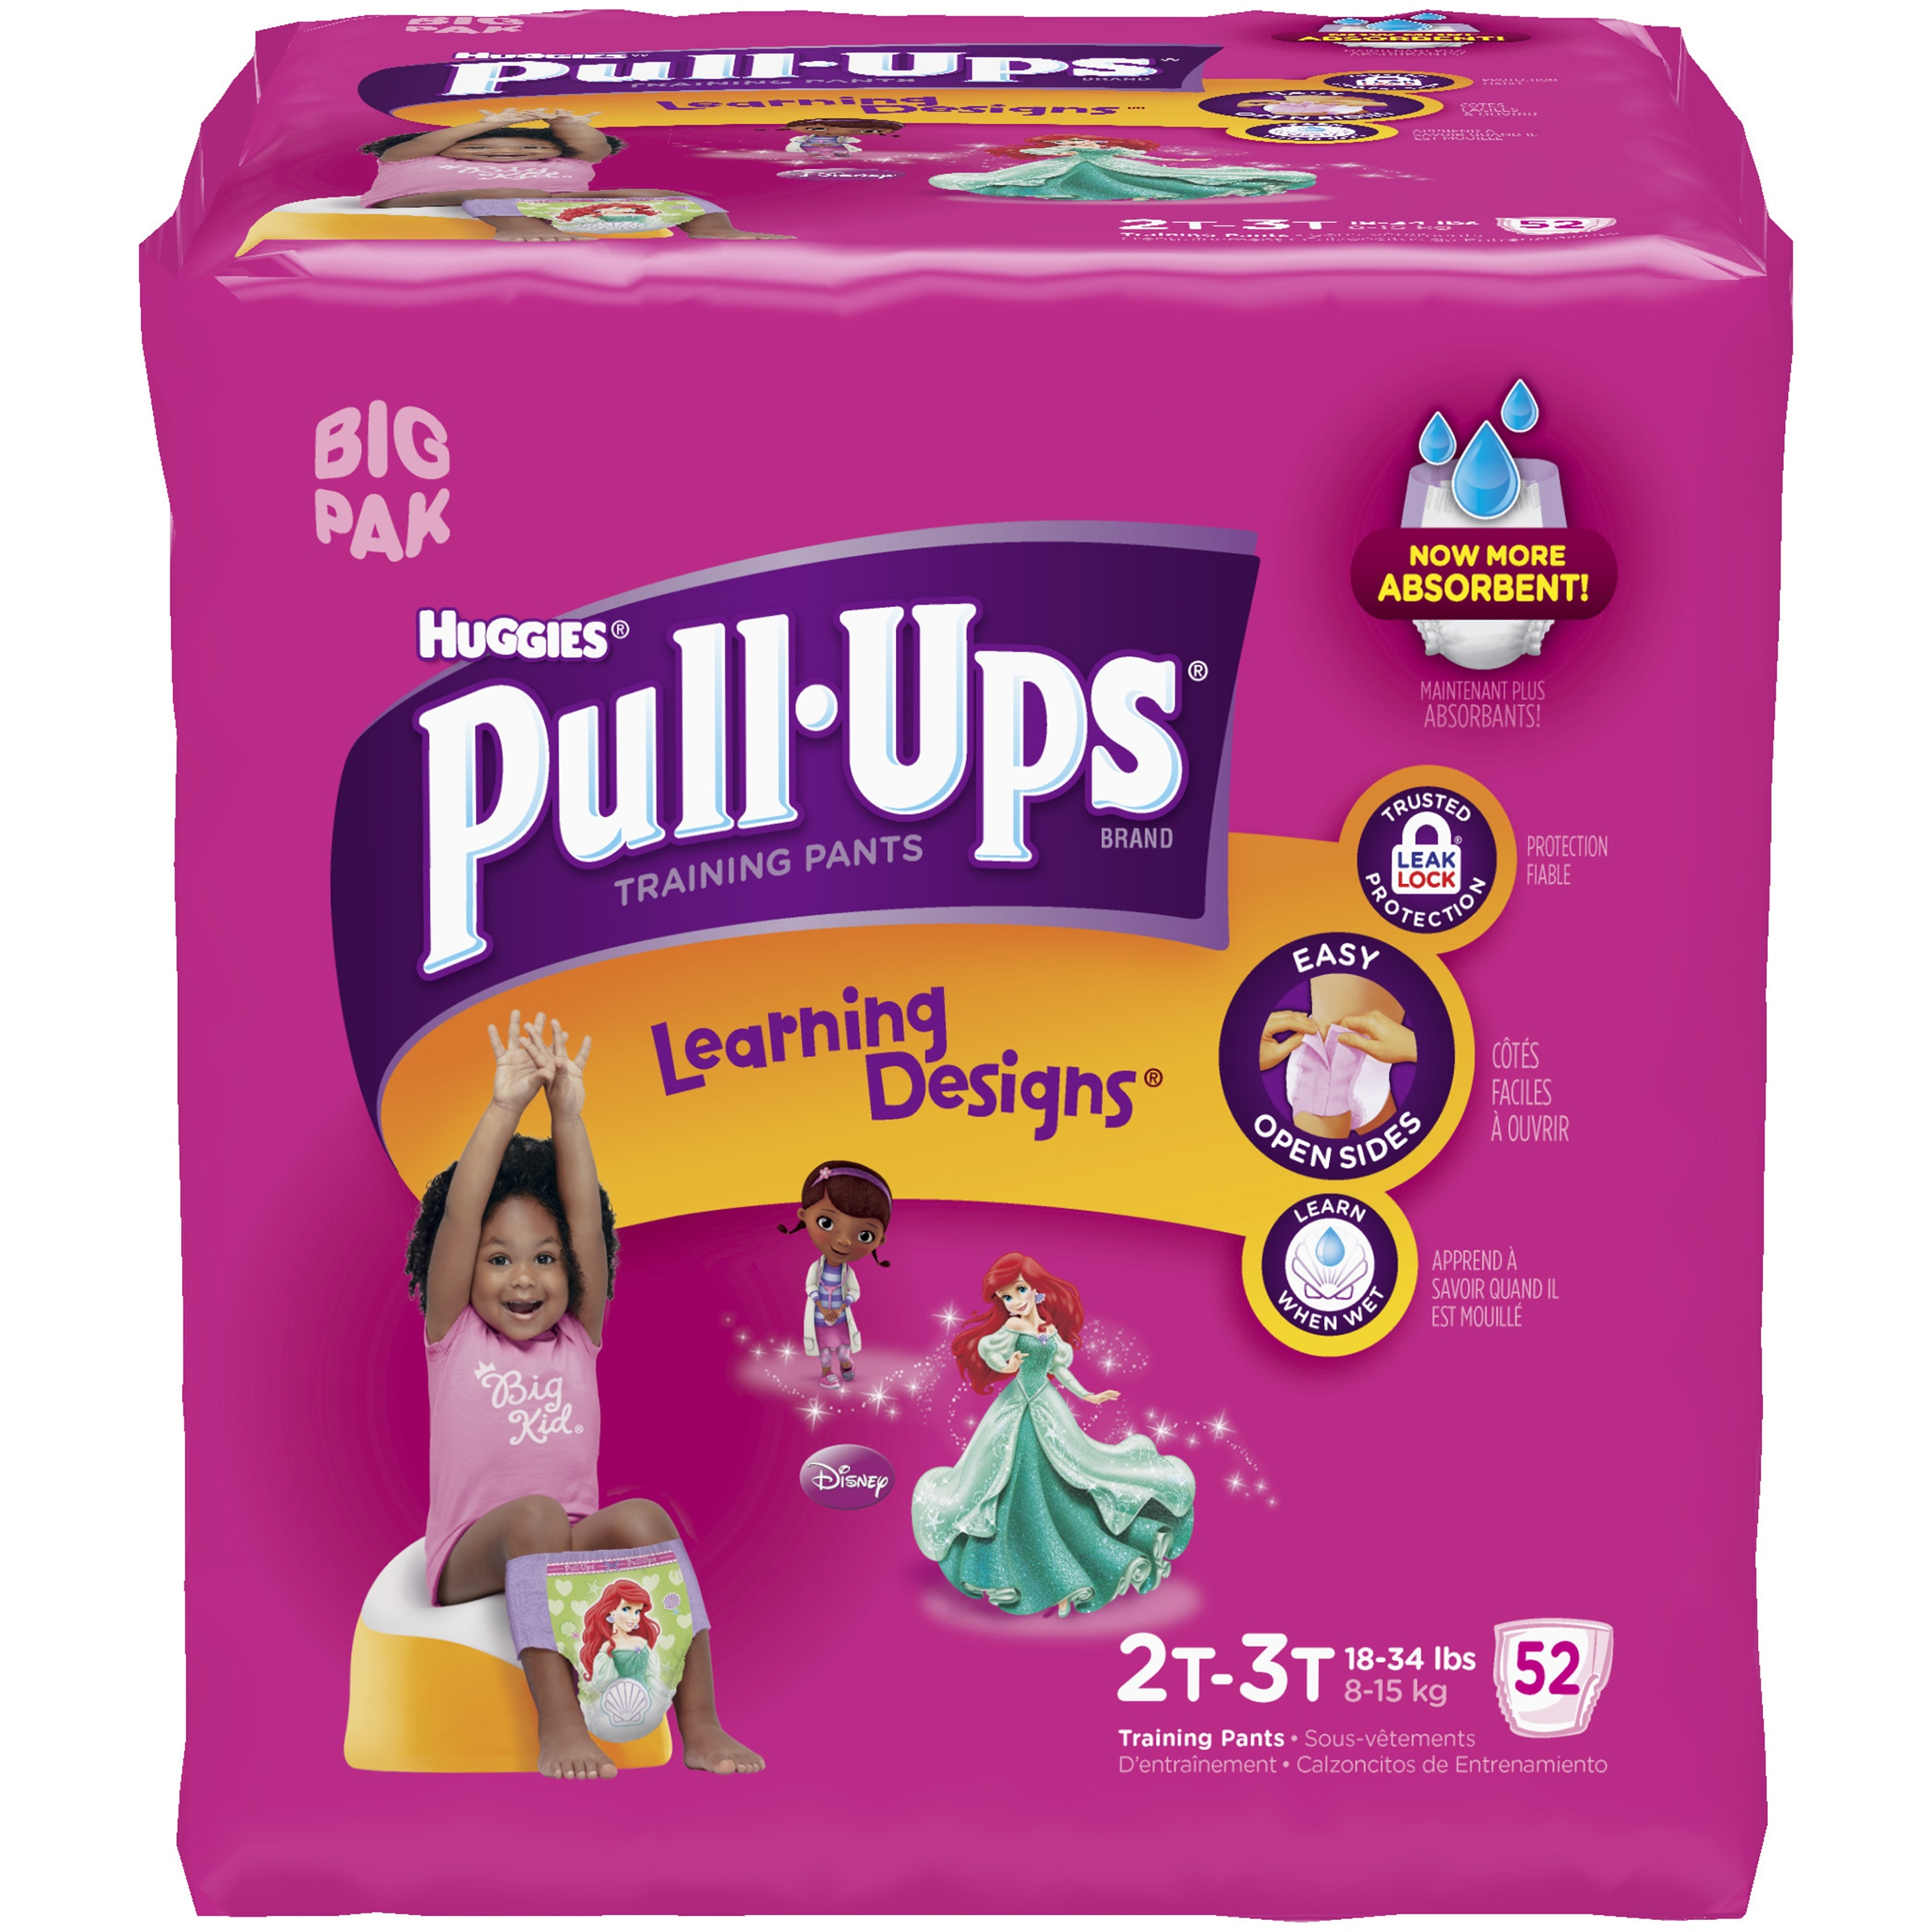 HUGGIES Pull-Ups Girls' Training Pants with Learning Designs, Big Pak, (Choose Your Size)